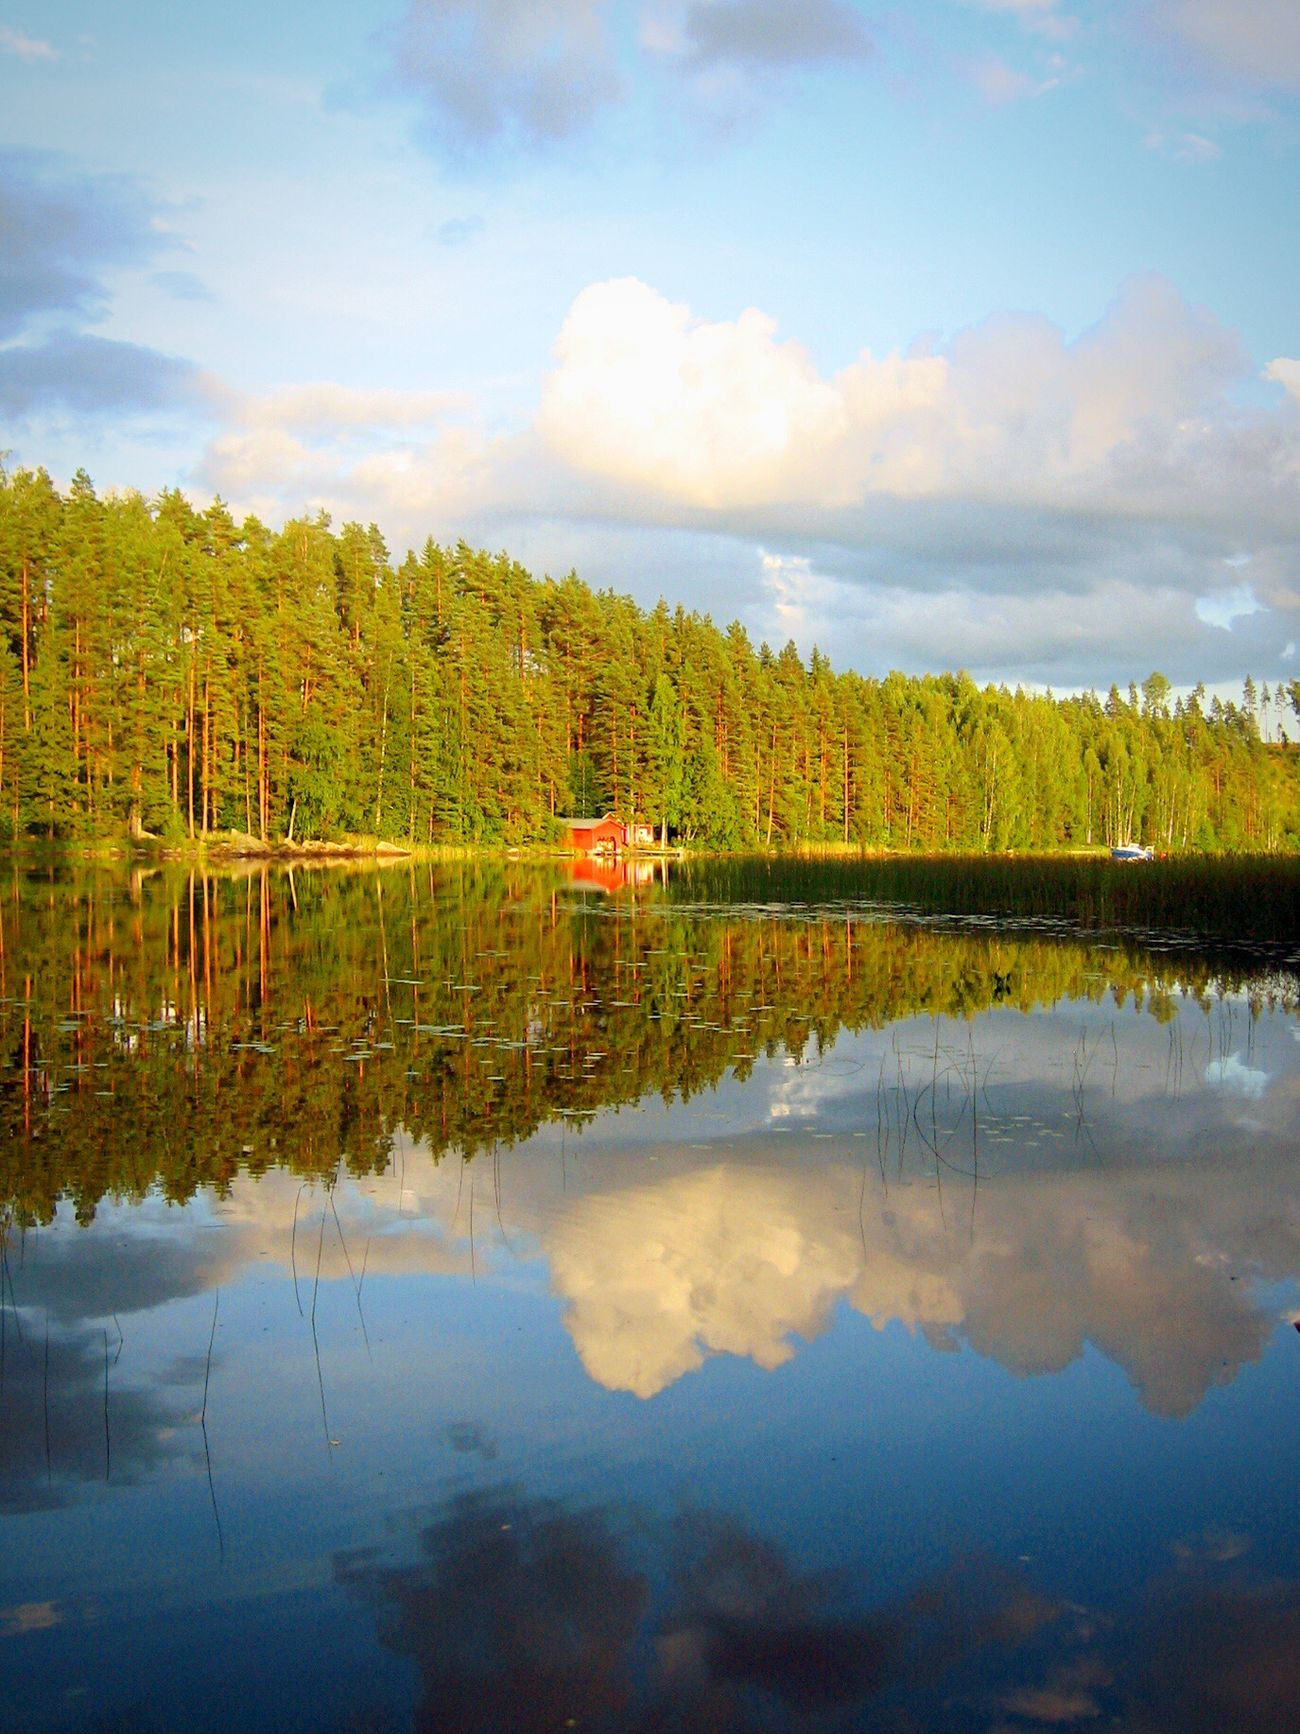 Badehaus. Reflection Finland Scenics Nature Sky Beauty In Nature Water Lake Tree Tranquil Scene Tranquility No People Idyllic Day Outdoors Light And Shadow Sky And Clouds Mirror Wonderful Finland Summer Alone Time Evening Light The Week On Eyem Power In Nature The Great Outdoors - 2017 EyeEm Awards